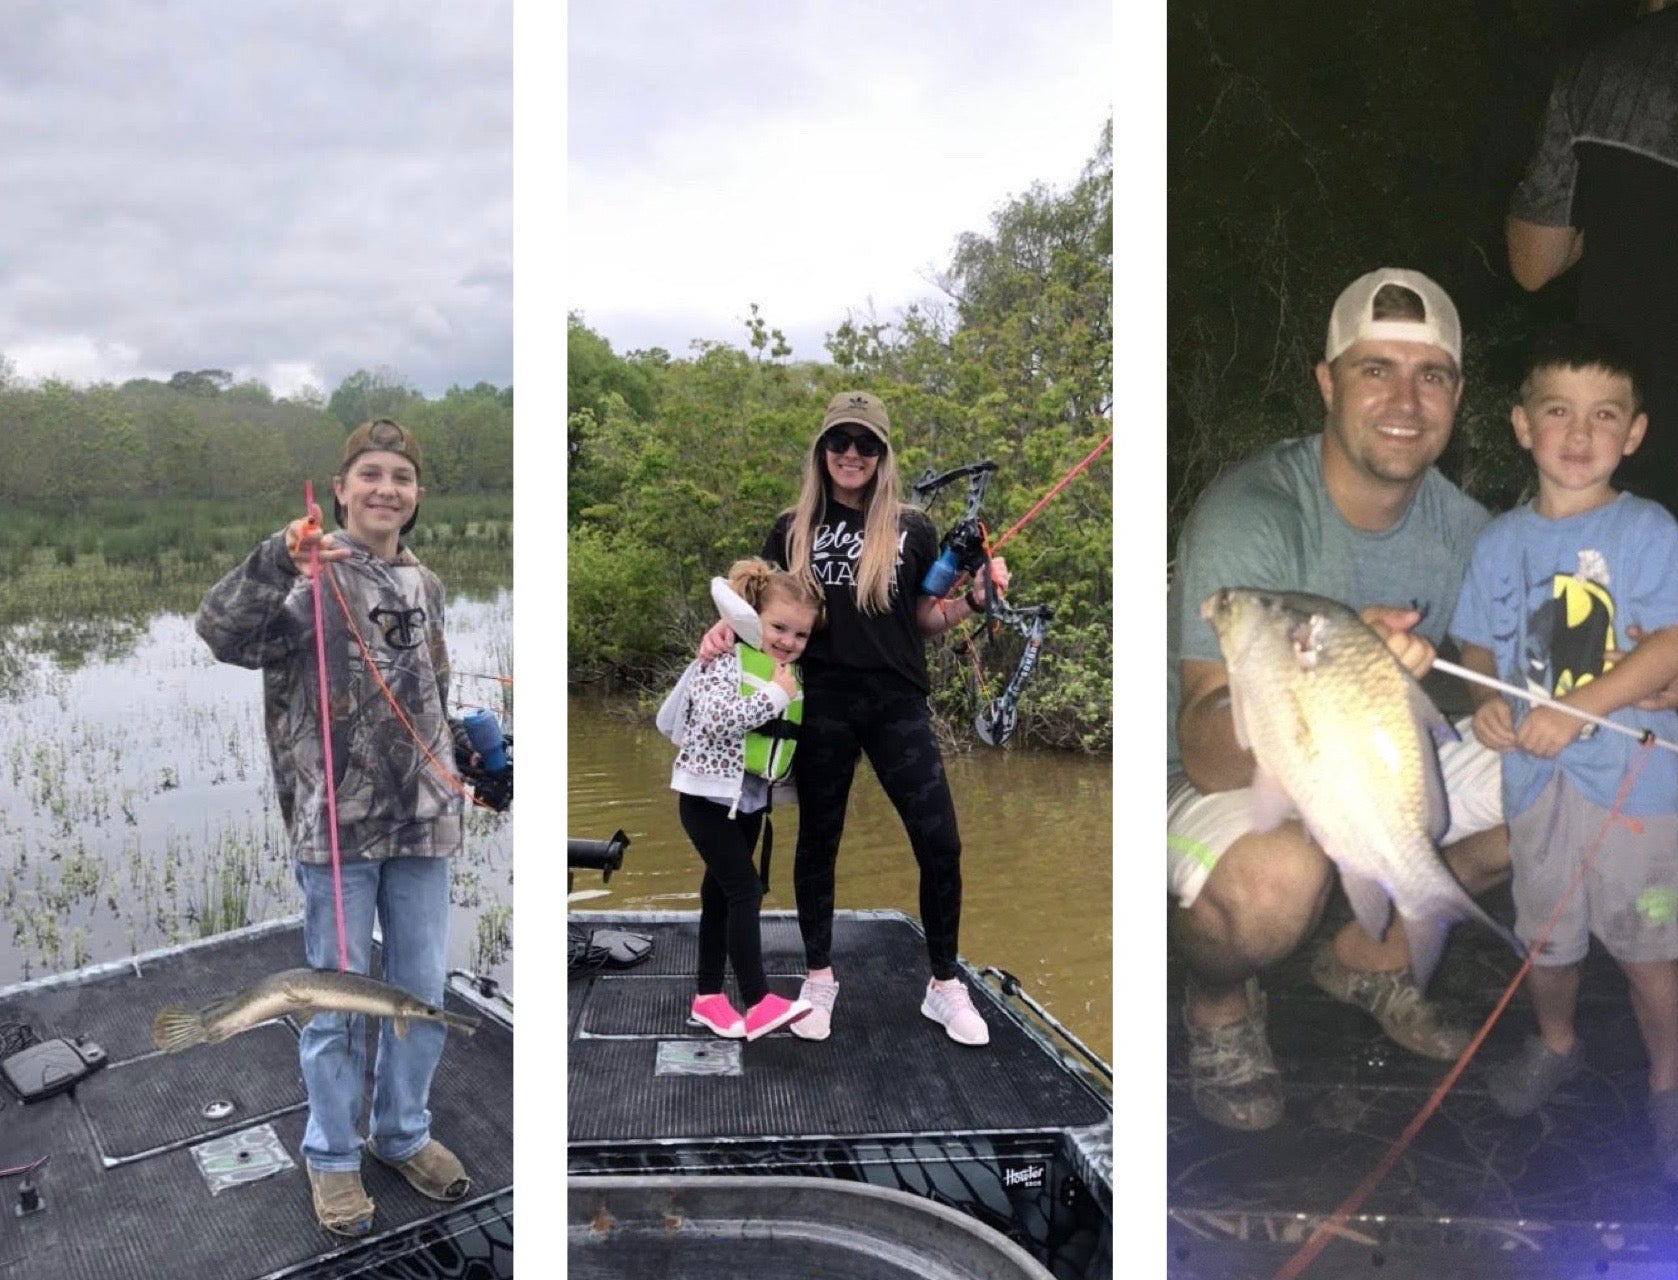 bowfishing is family friendly and is great for little kids